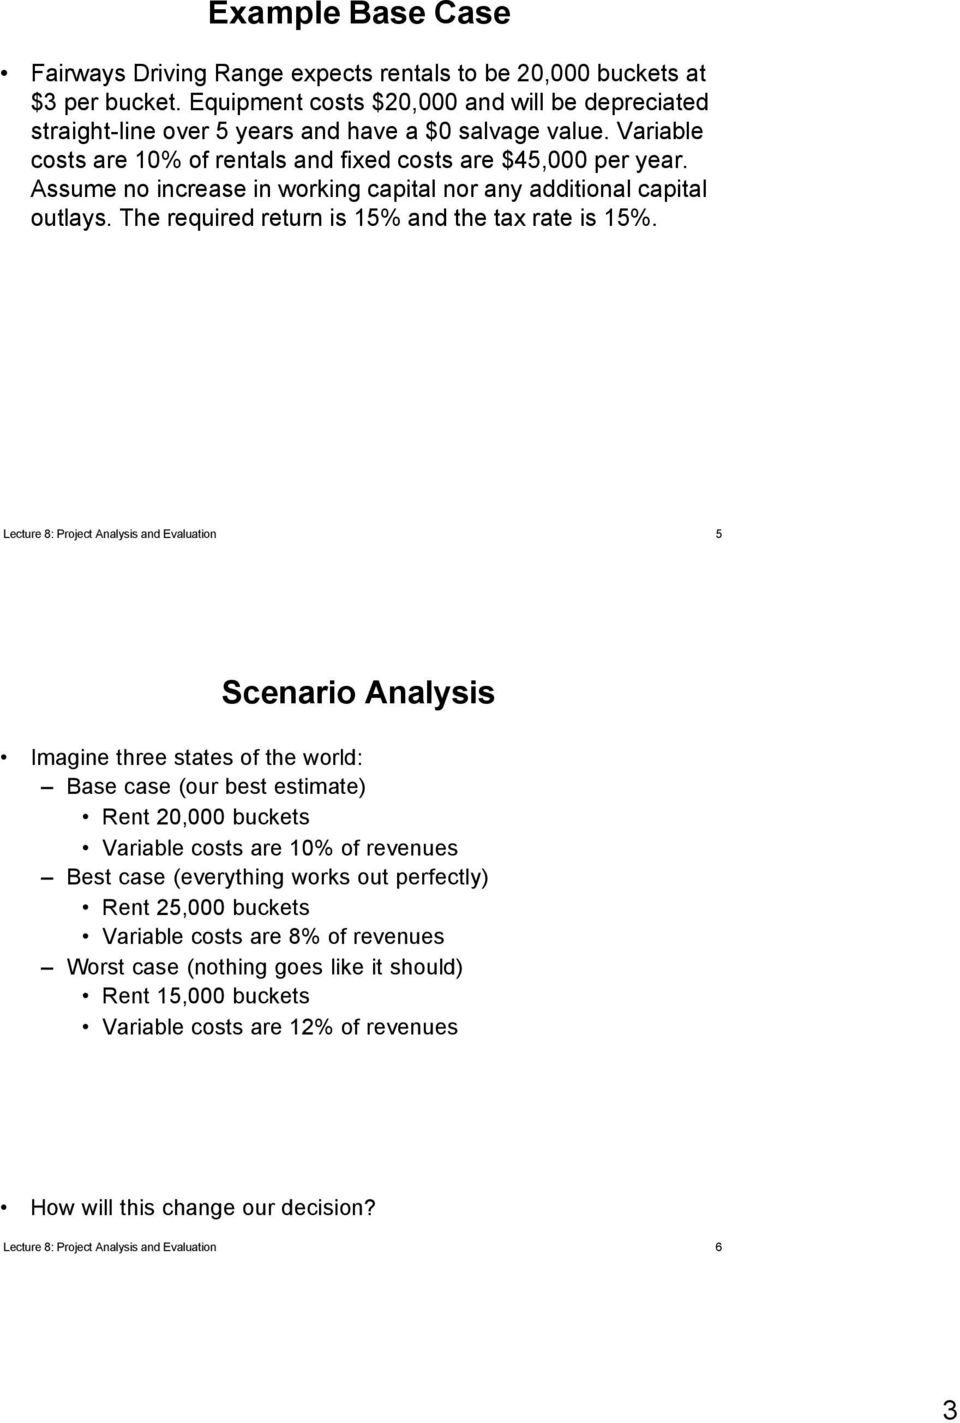 Lecture 8: Project Analysis and Evaluation 5 Scenario Analysis Imagine three states of the world: Base case (our best estimate) Rent 20,000 buckets Variable costs are 10% of revenues Best case